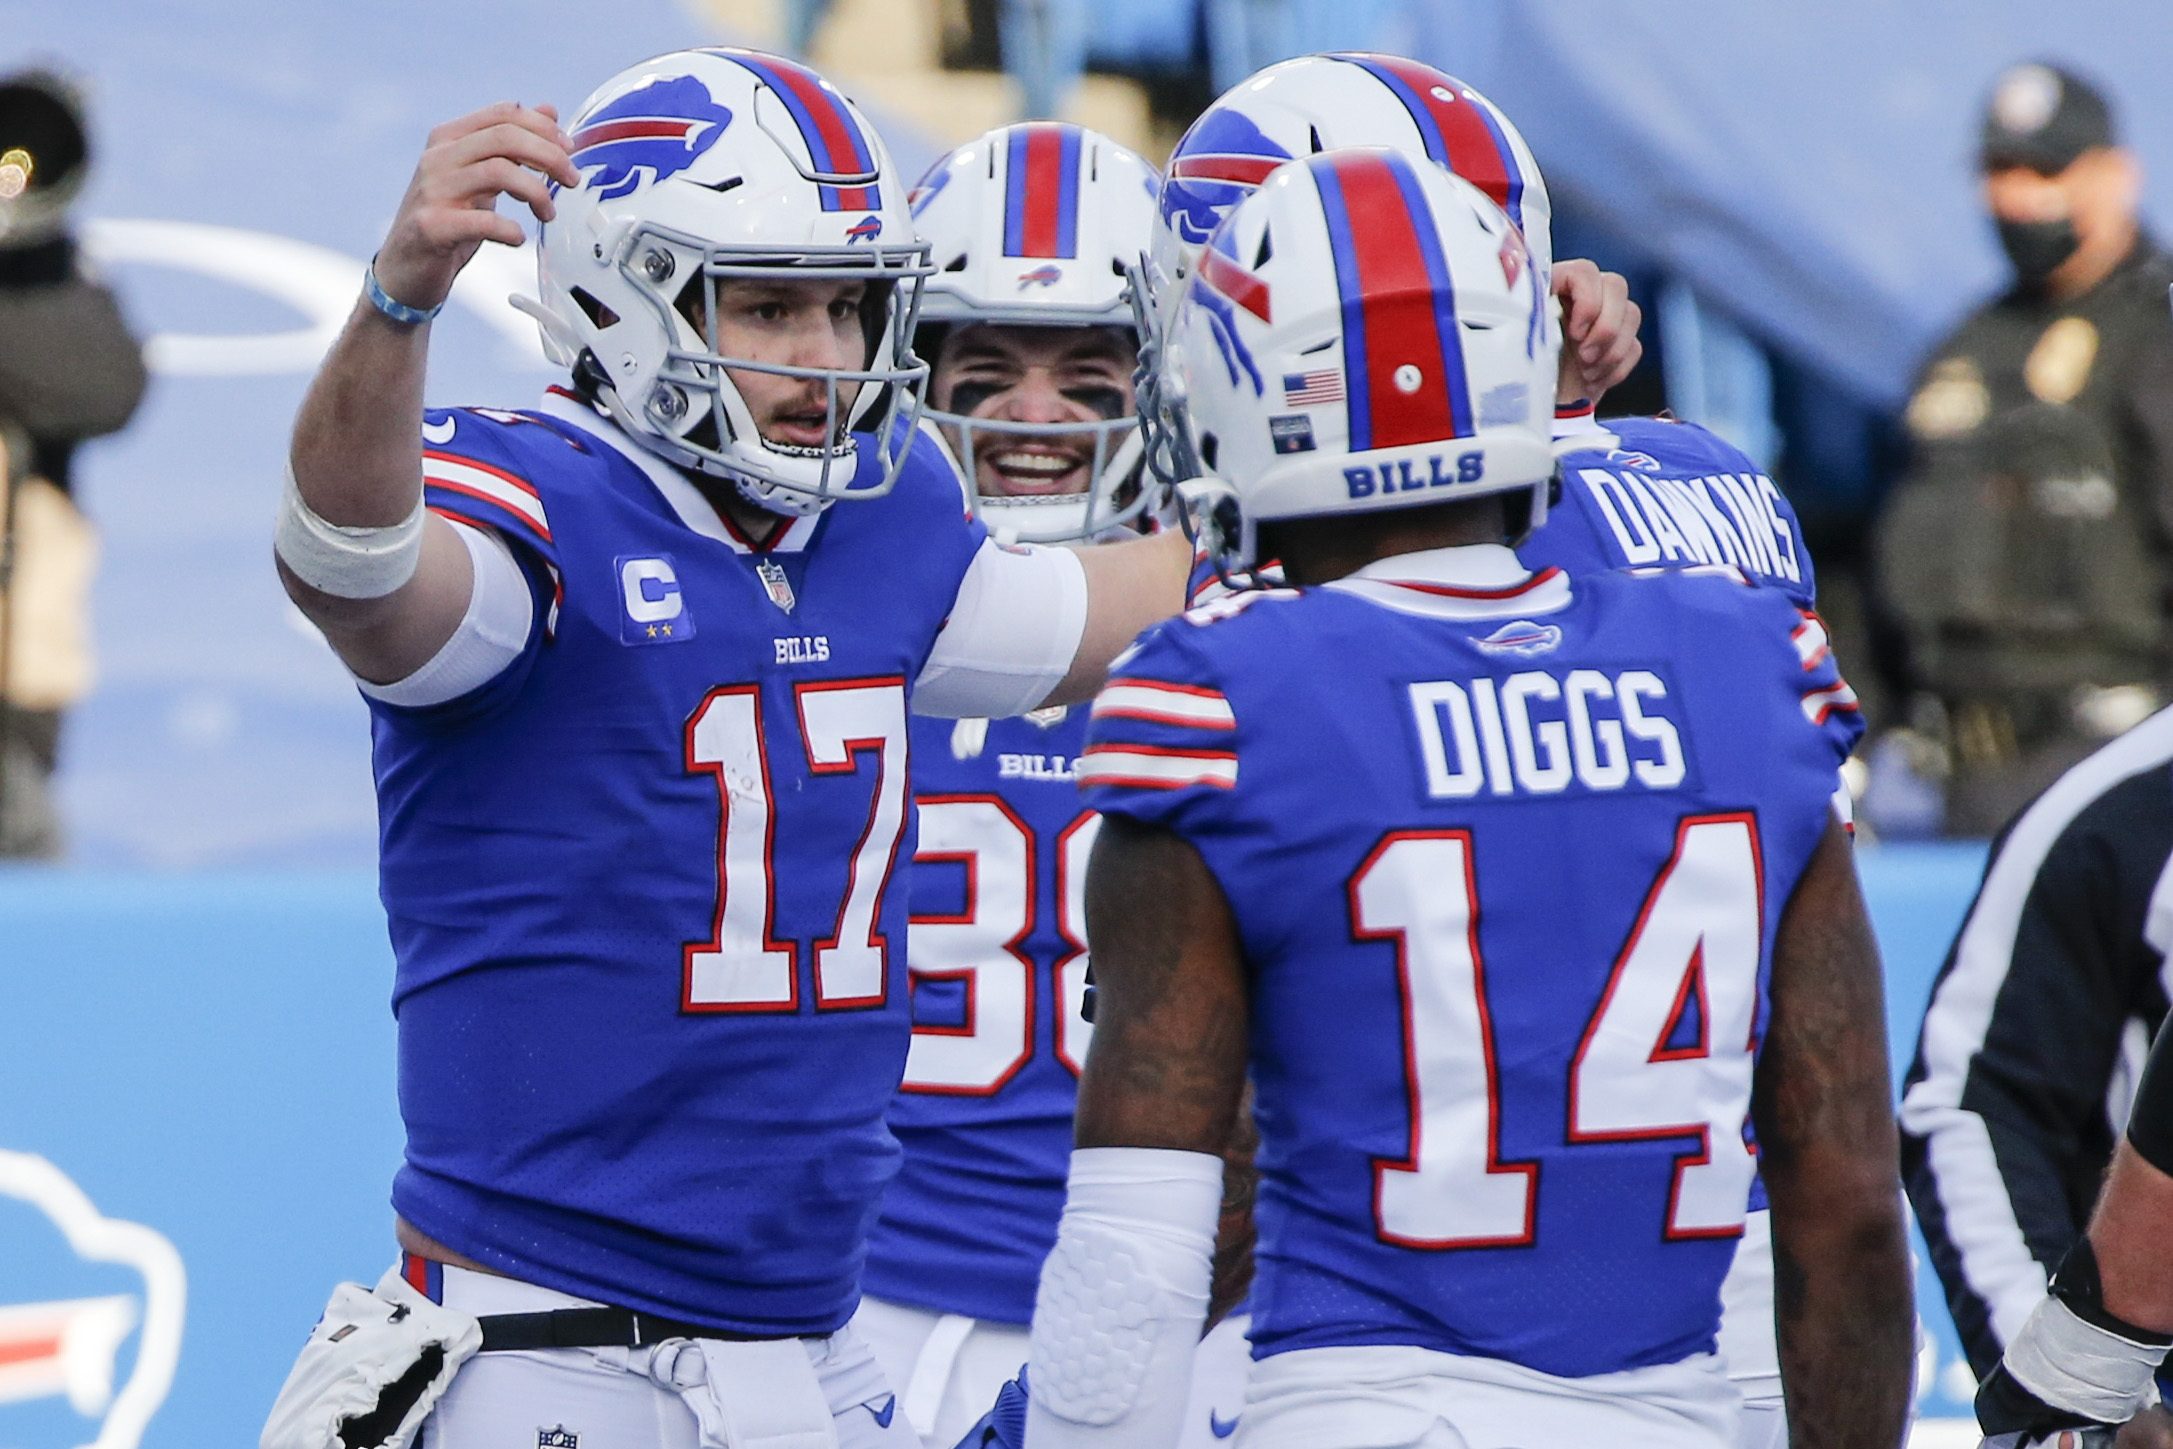 Bills Keys To Win Vs Ravens In 2021 Nfl Playoff Matchup Bleacher Report Latest News Videos And Highlights